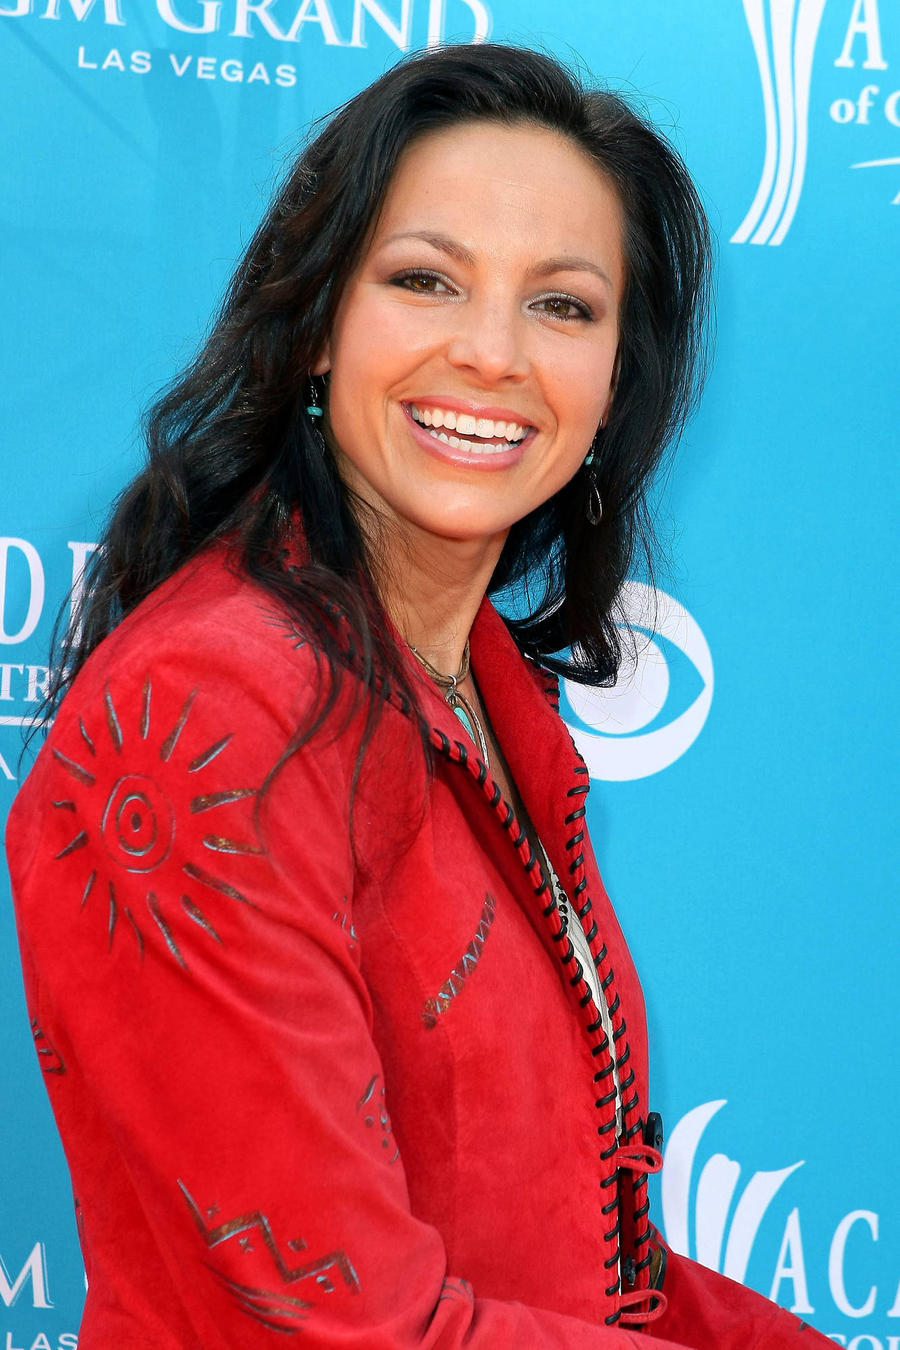 Country Star Joey Feek Loses Cancer Fight At 40